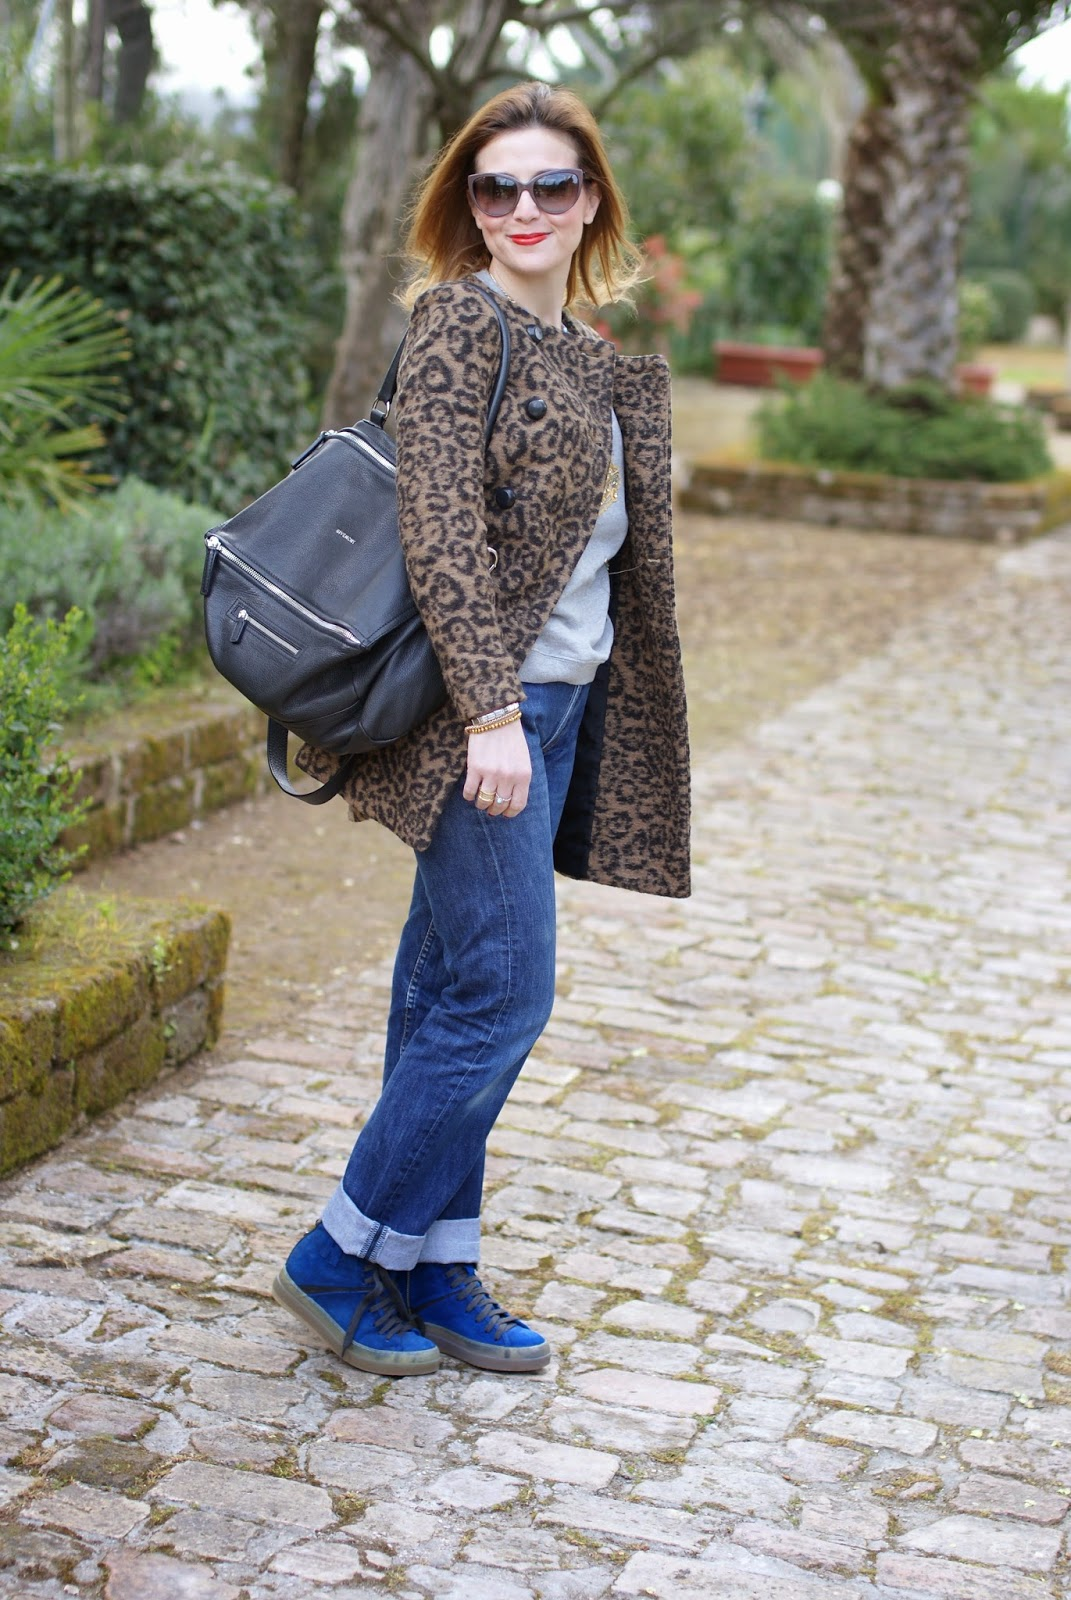 Givenchy Pandora grande, cappotto leopardato Zara, Ruco Line blue shoes, Fashion and Cookies, fashion blogger